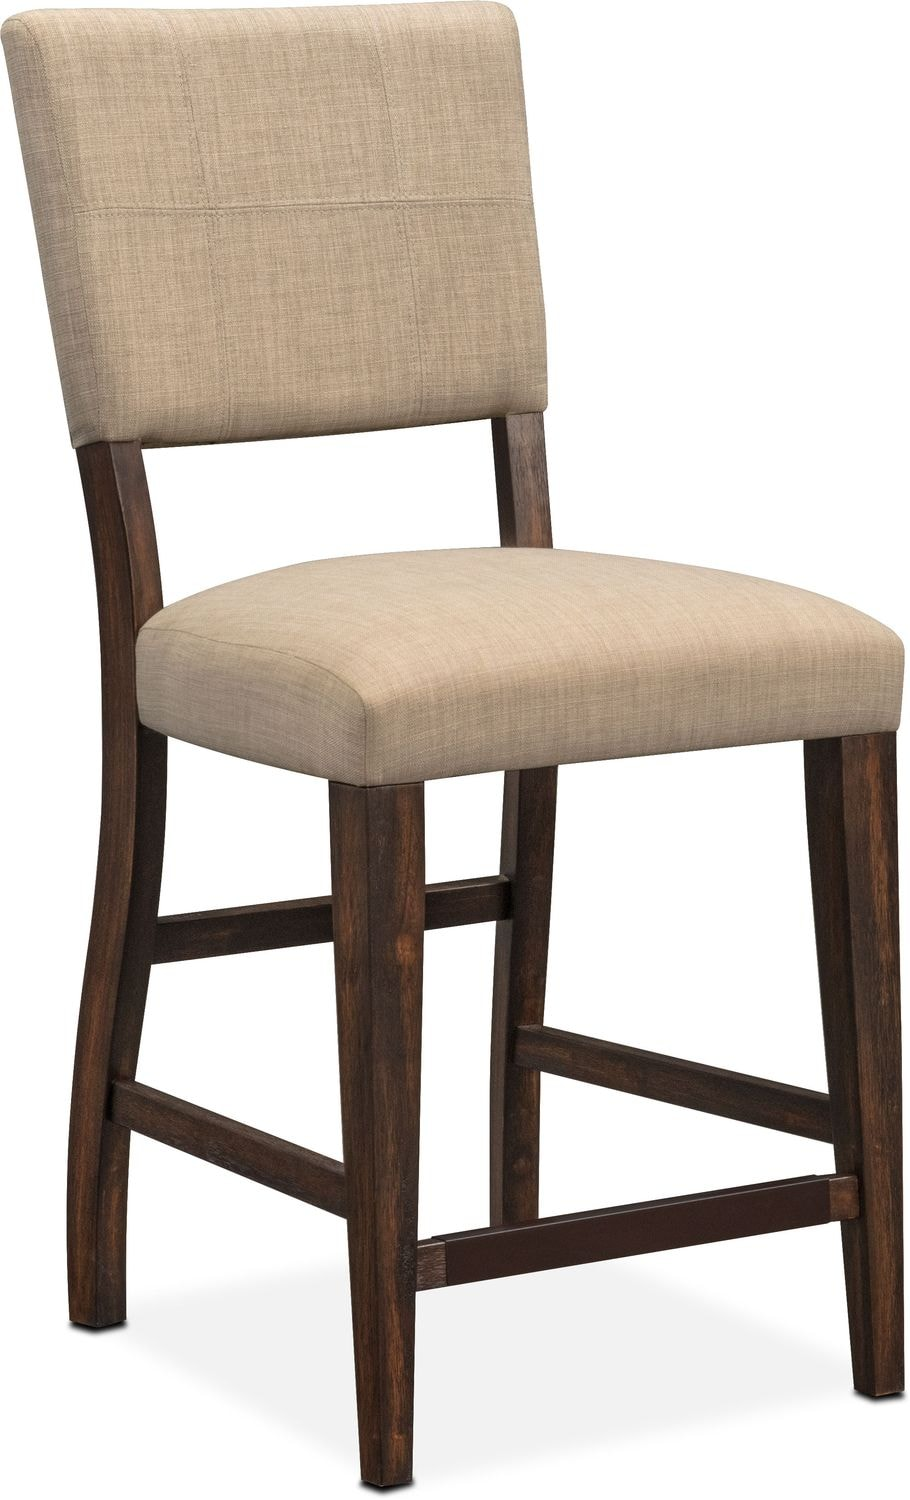 Tribeca Counter-Height Upholstered Side Chair - Tobacco